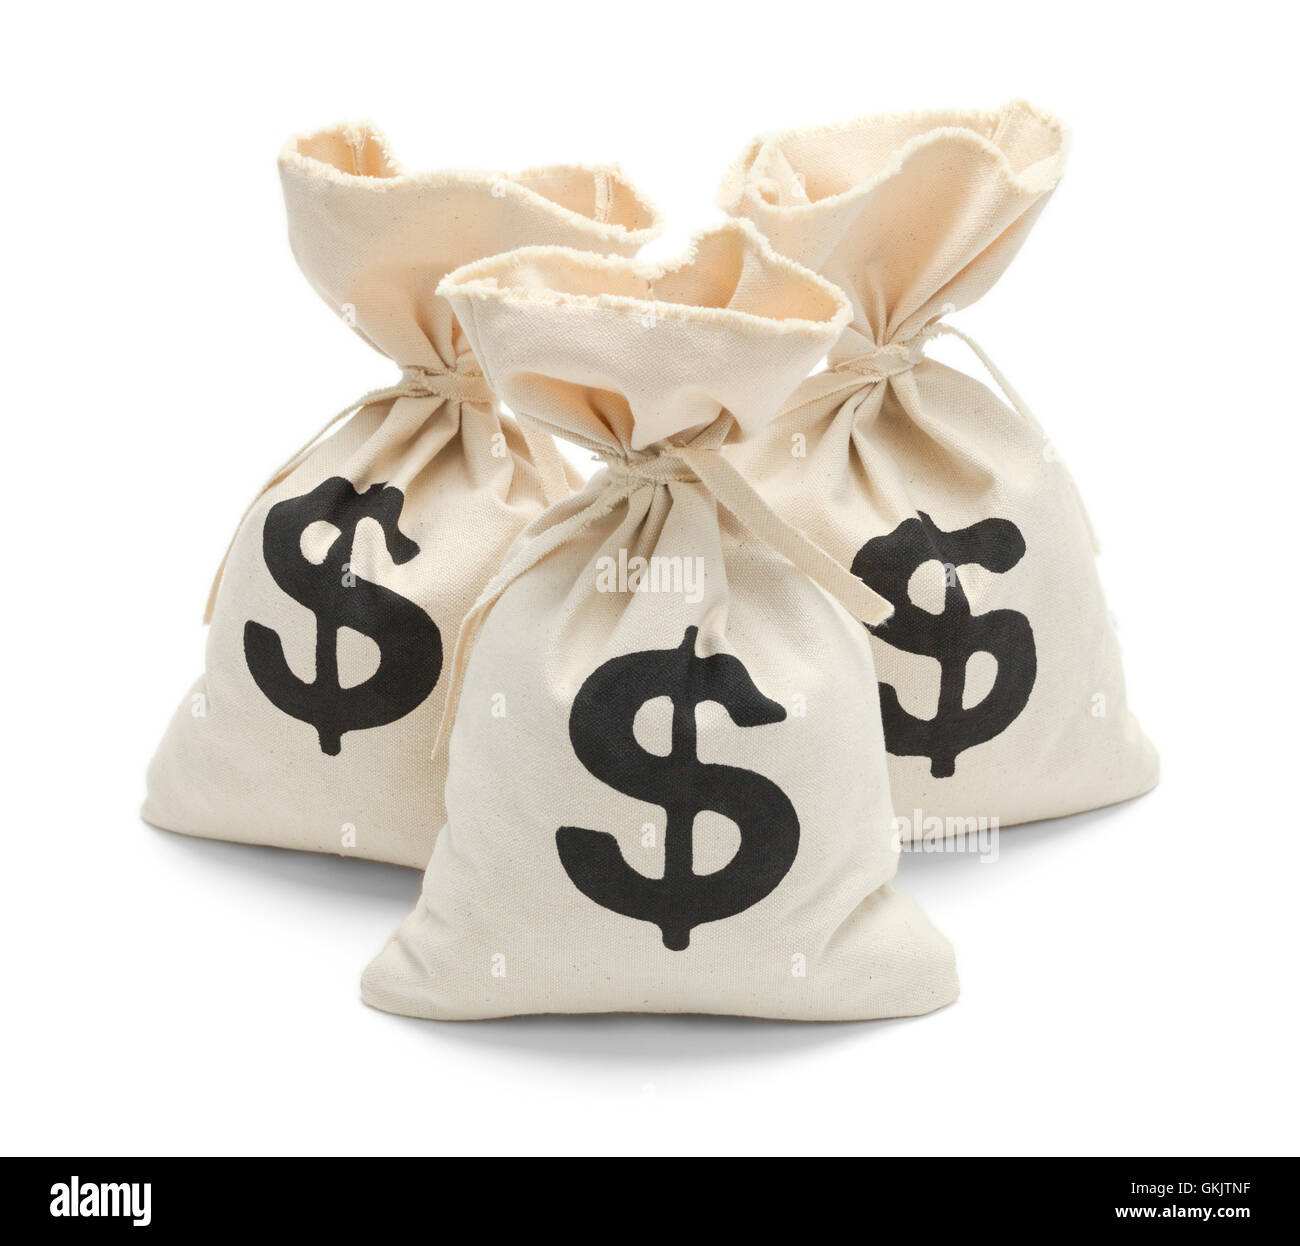 Three Tied Money Bags Isolated on White Background. - Stock Image